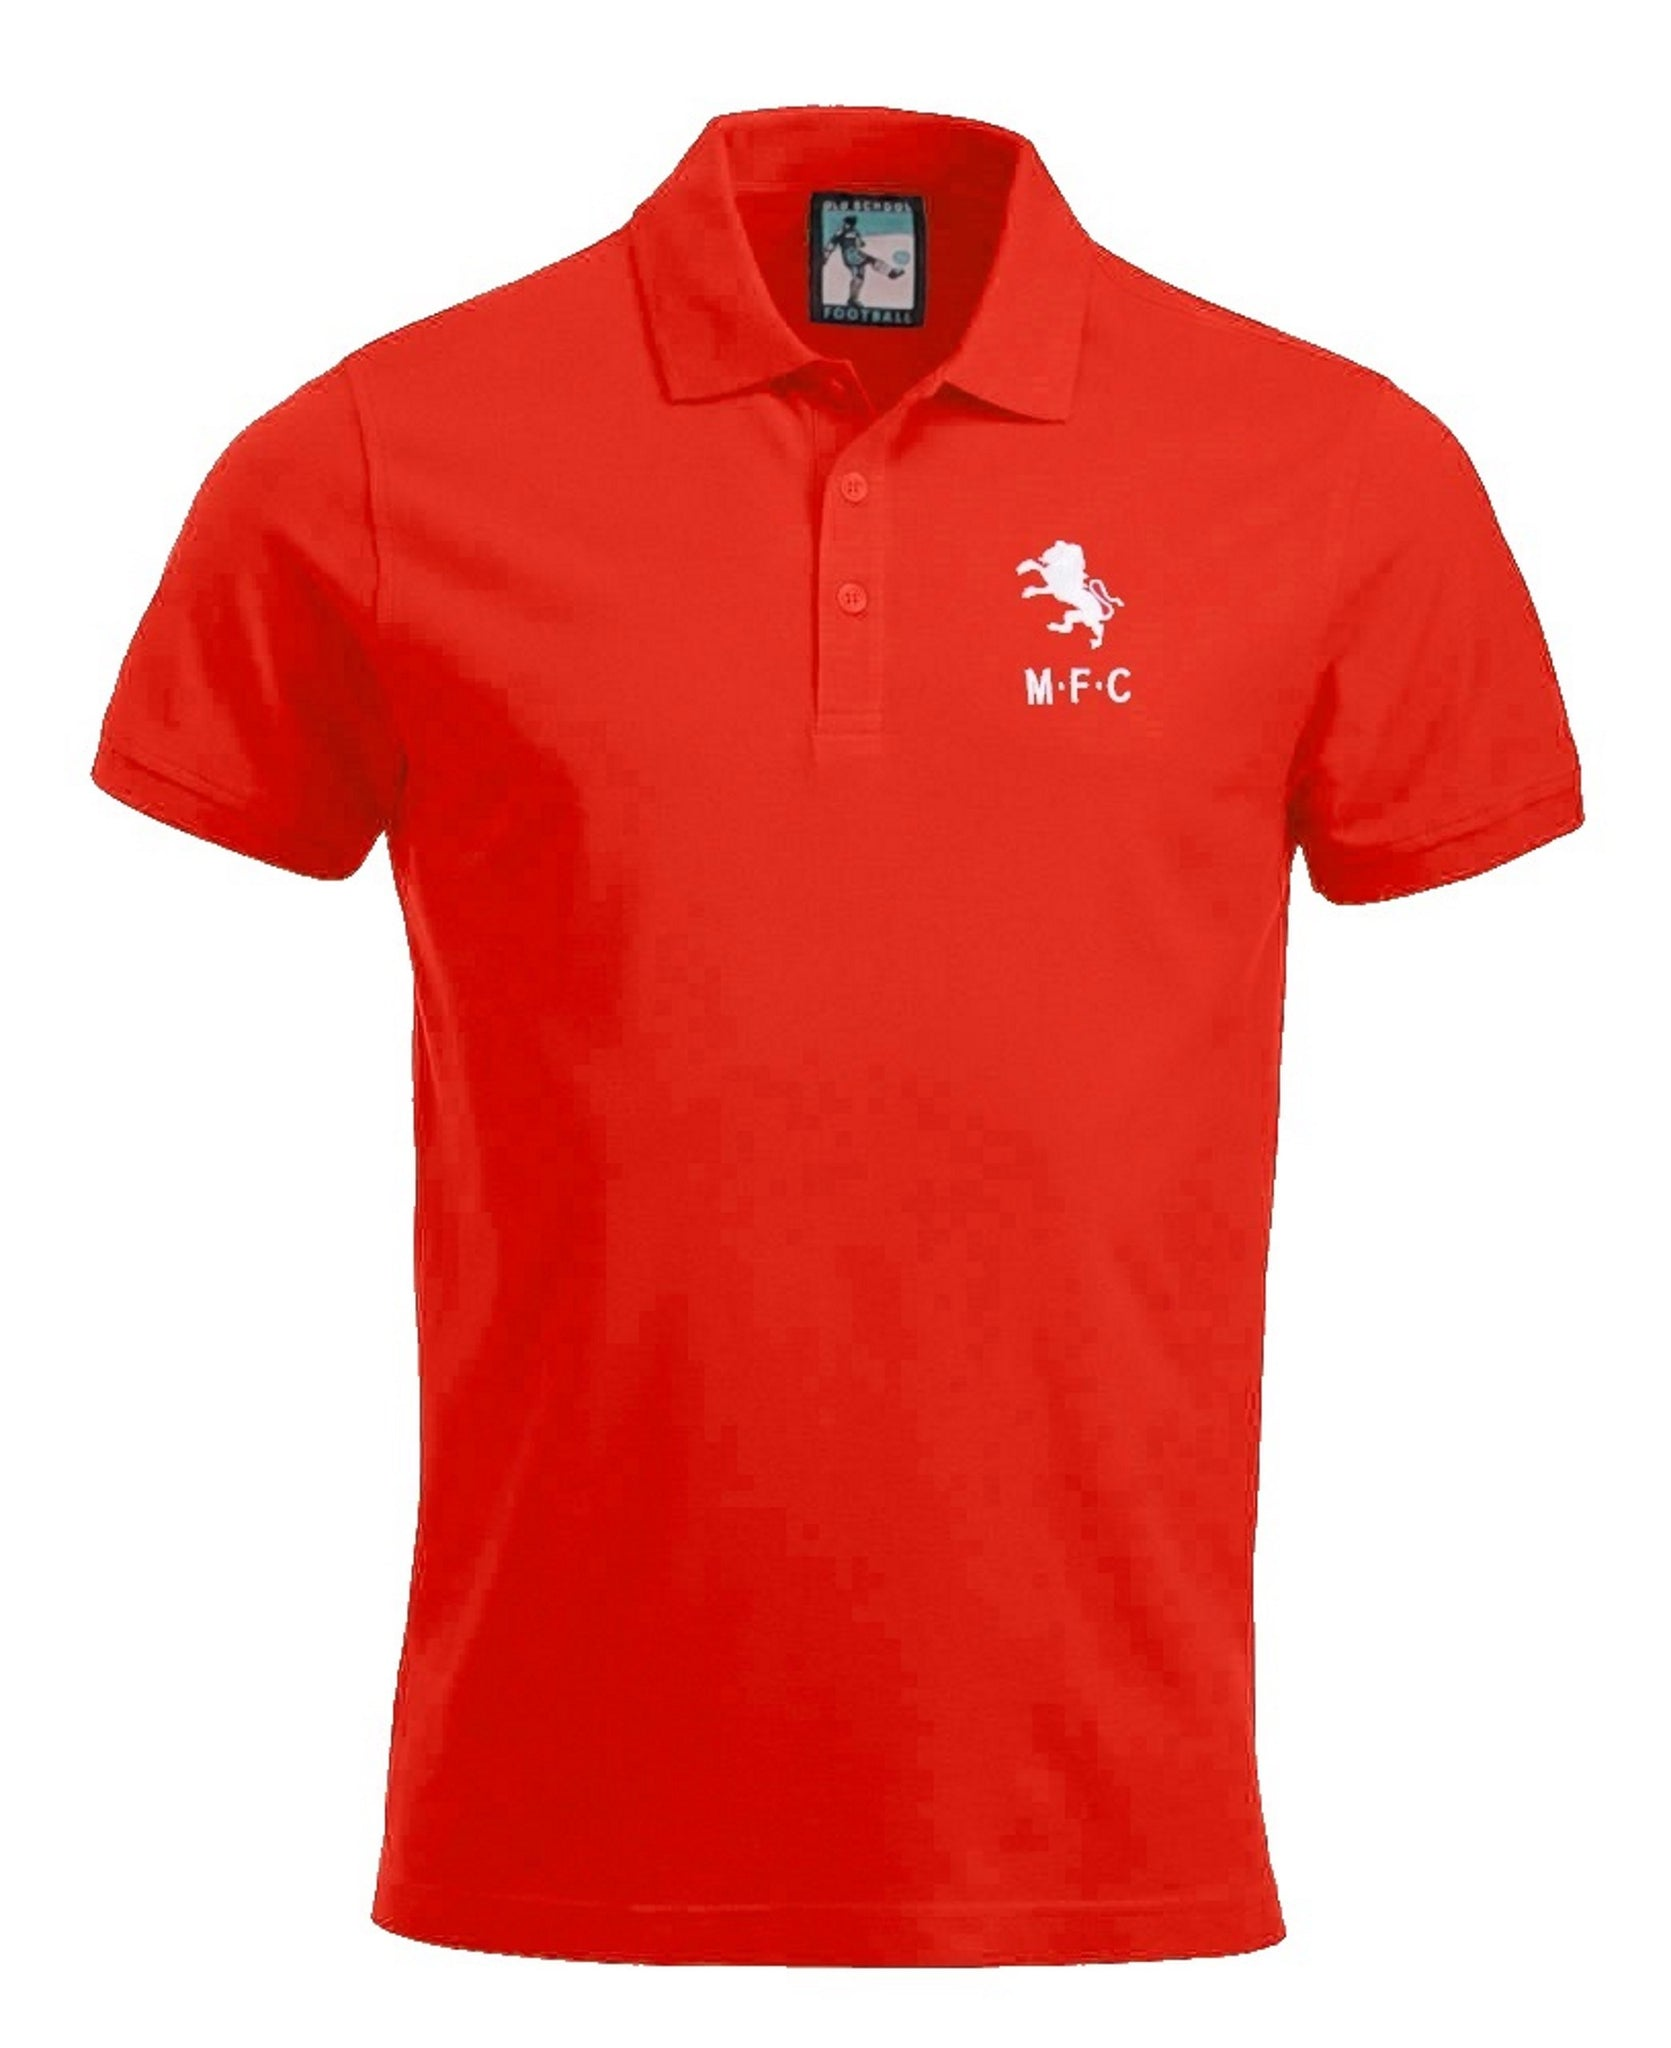 Middlesbrough Retro 1970s Football Polo Shirt - Polo